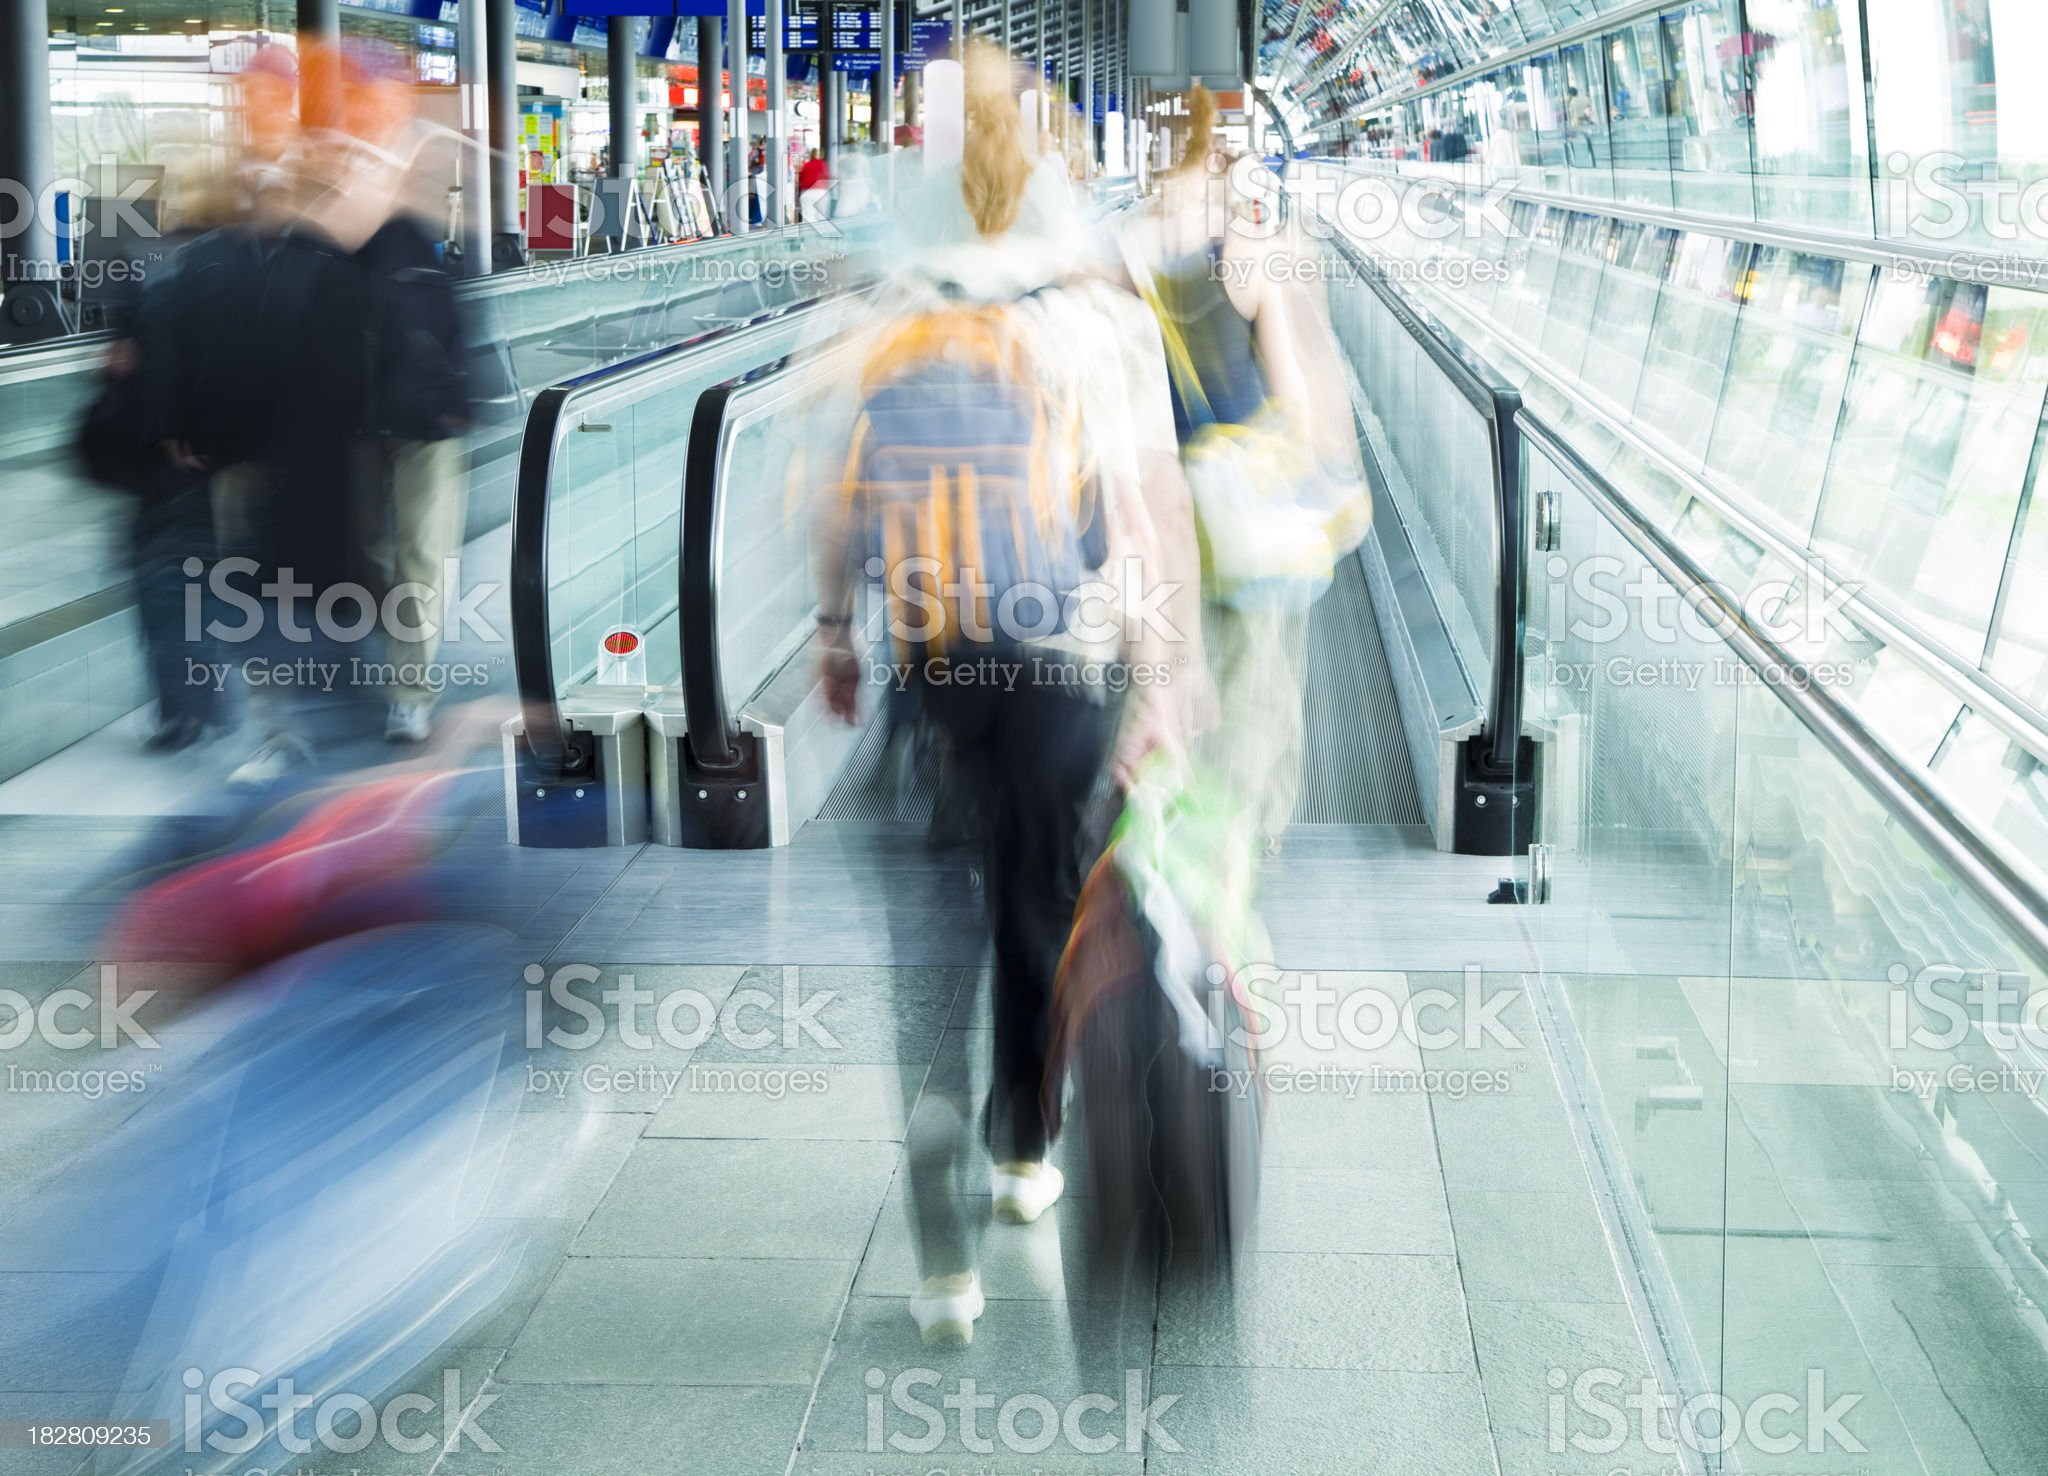 Travellers Entering Moving Walkway at Airport, Blurred Motion royalty-free stock photo